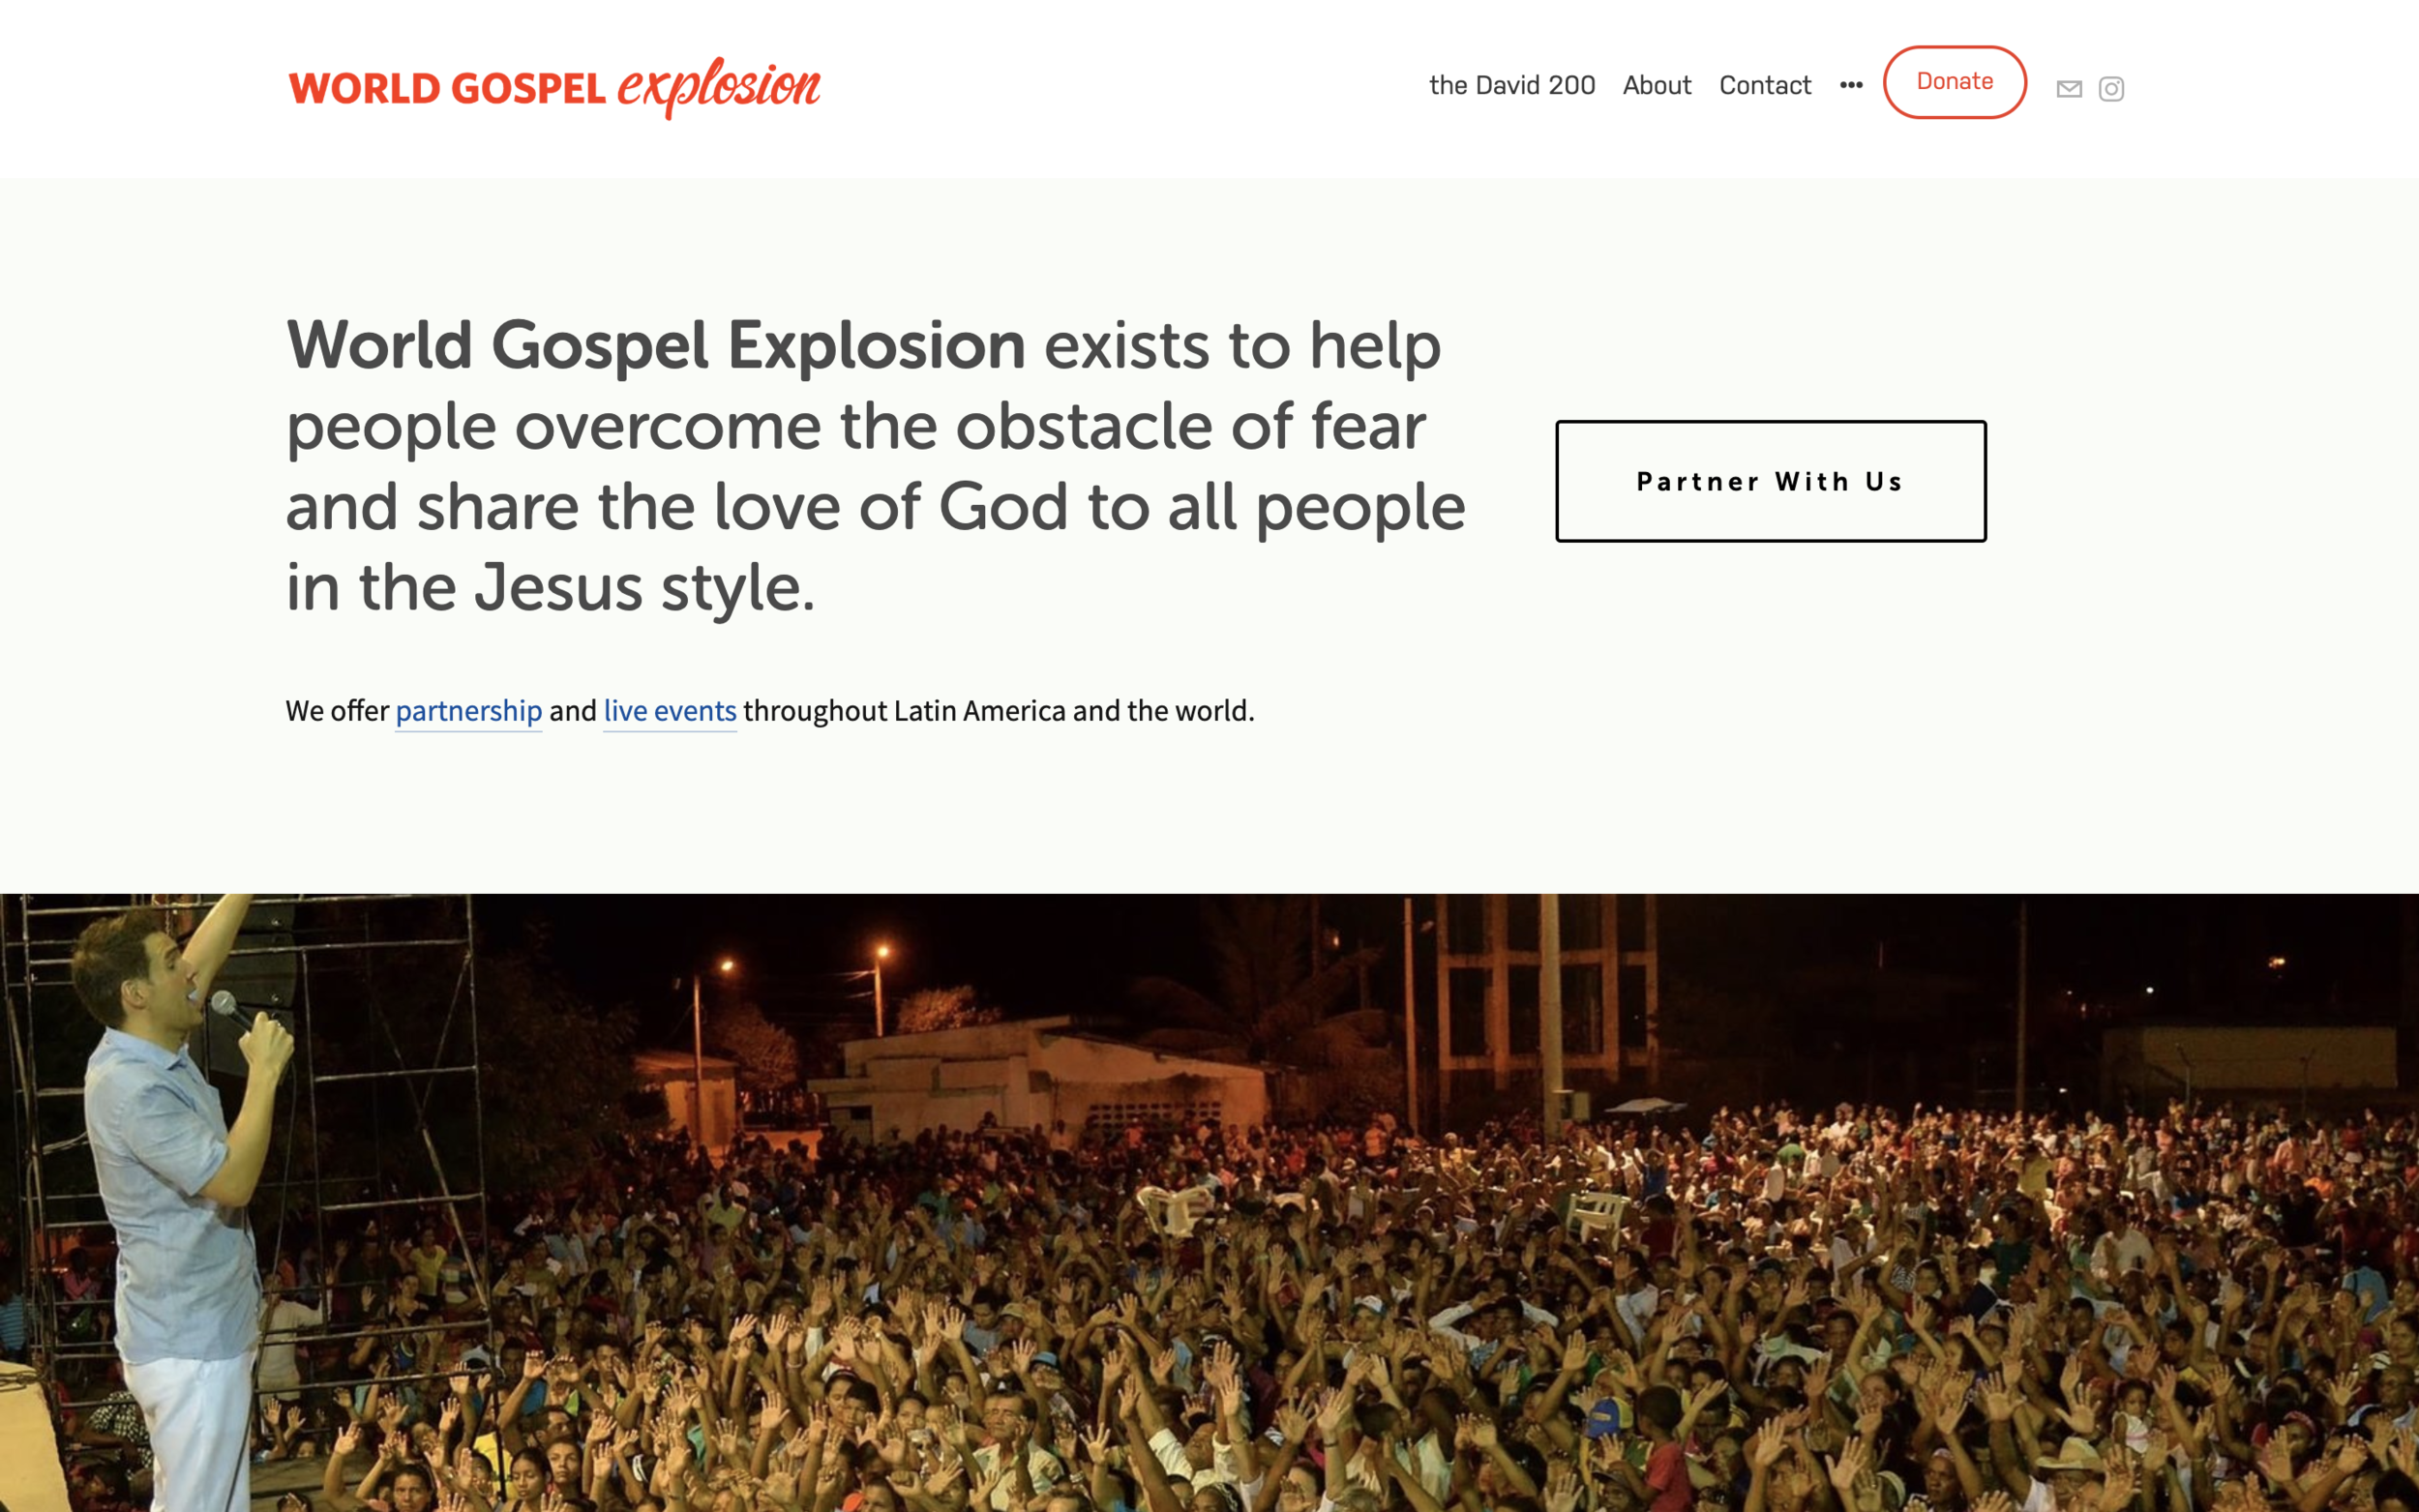 andrewfriesen.org - Clean Squarespace Website DesignWorld Gospel Explosion is on a mission and needed their website to work as hard as they do. This custom Squarespace website is fully responsive and incorporates a unique design.